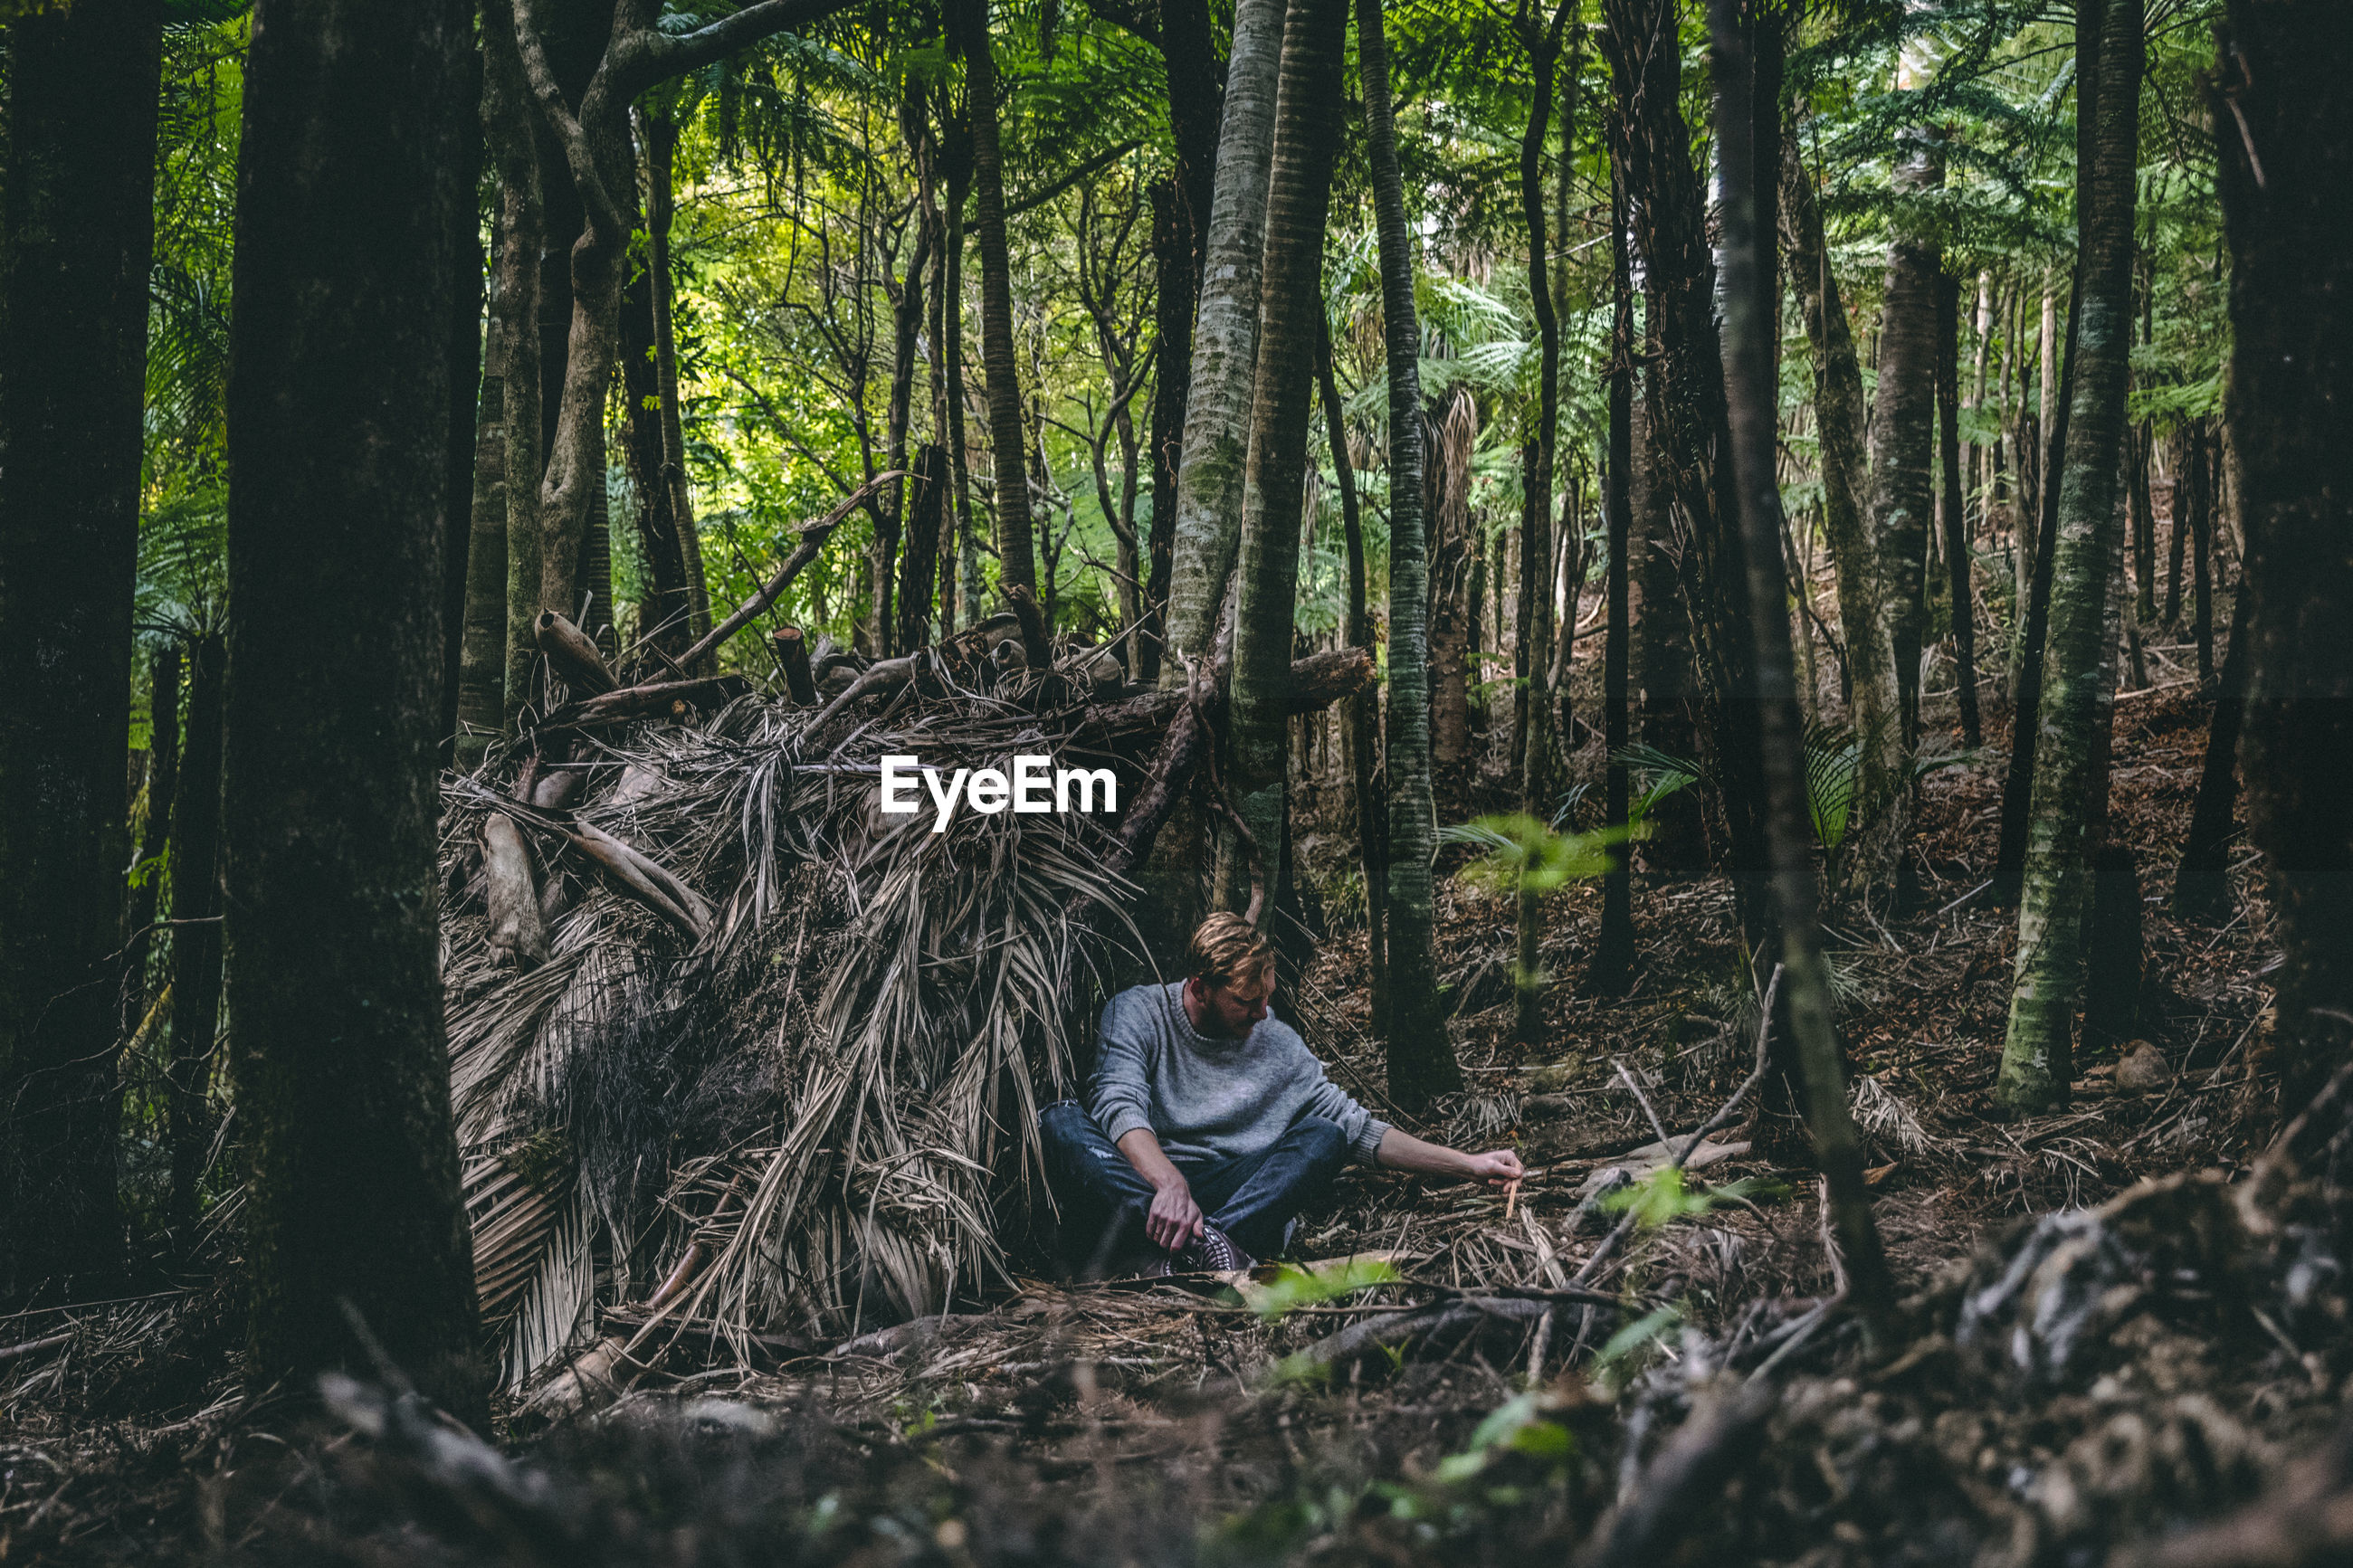 Man sitting amidst trees in forest